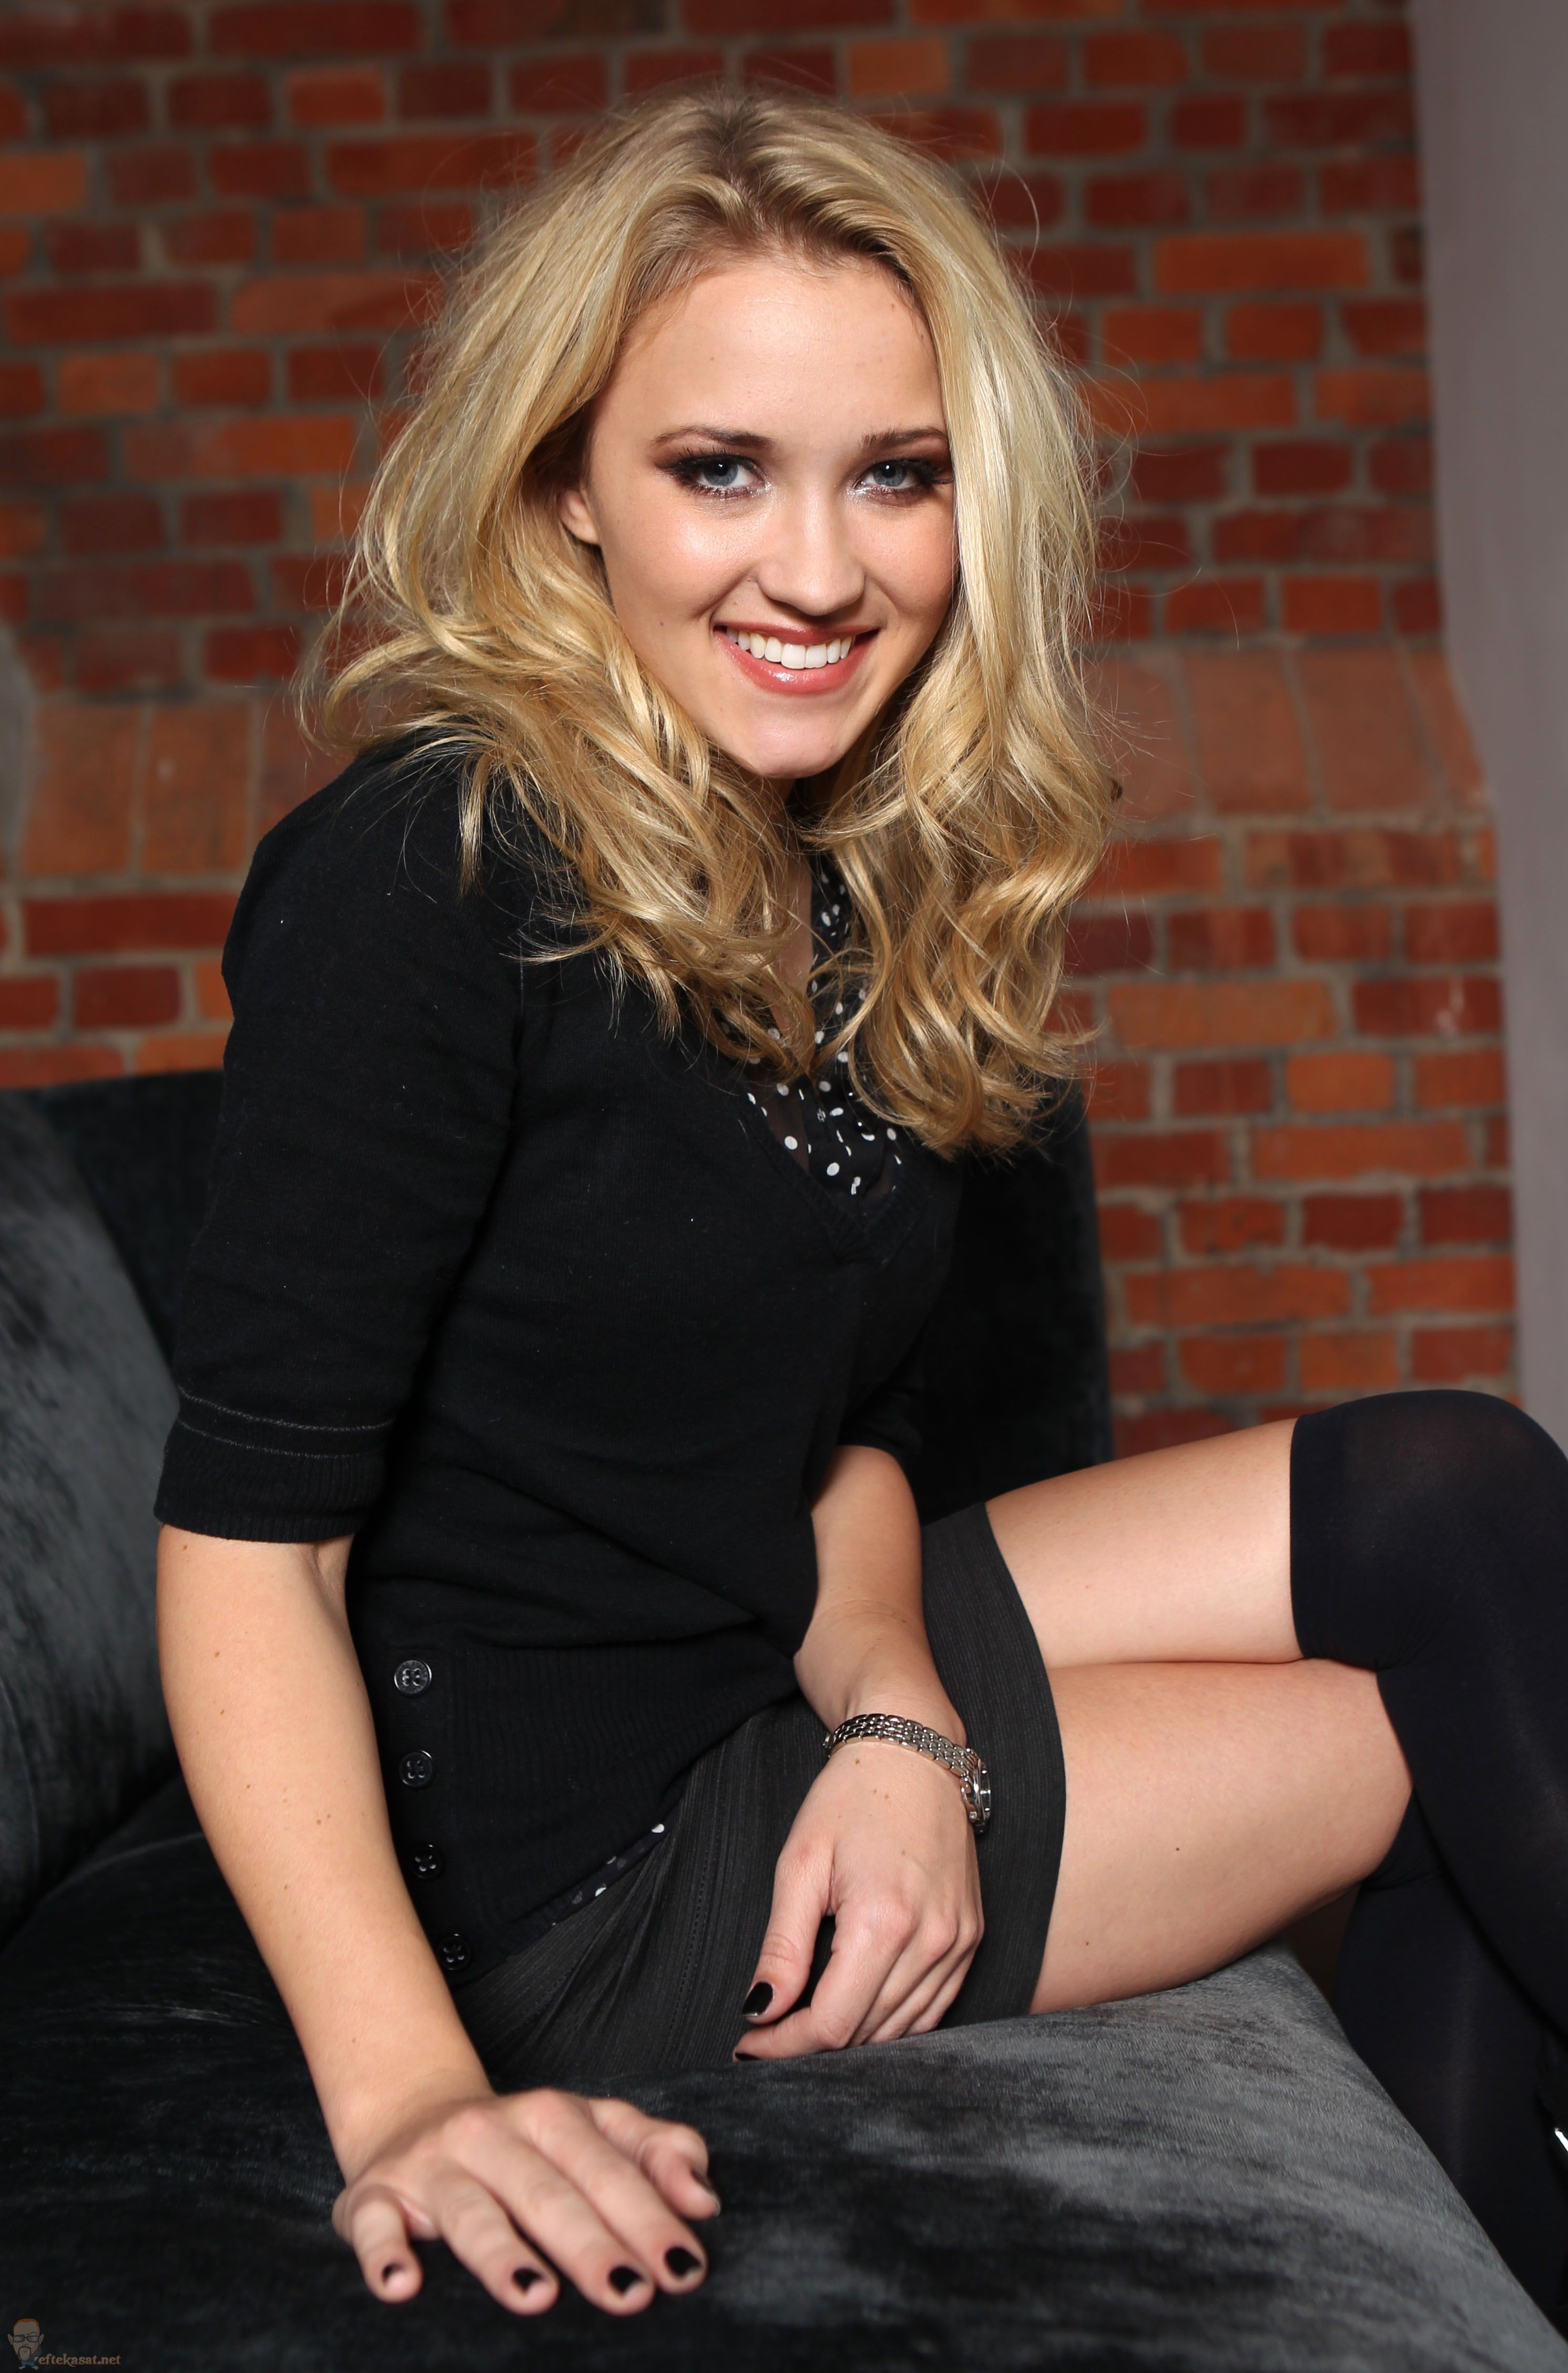 Paparazzi Emily Osment naked (96 foto and video), Topless, Paparazzi, Feet, legs 2019